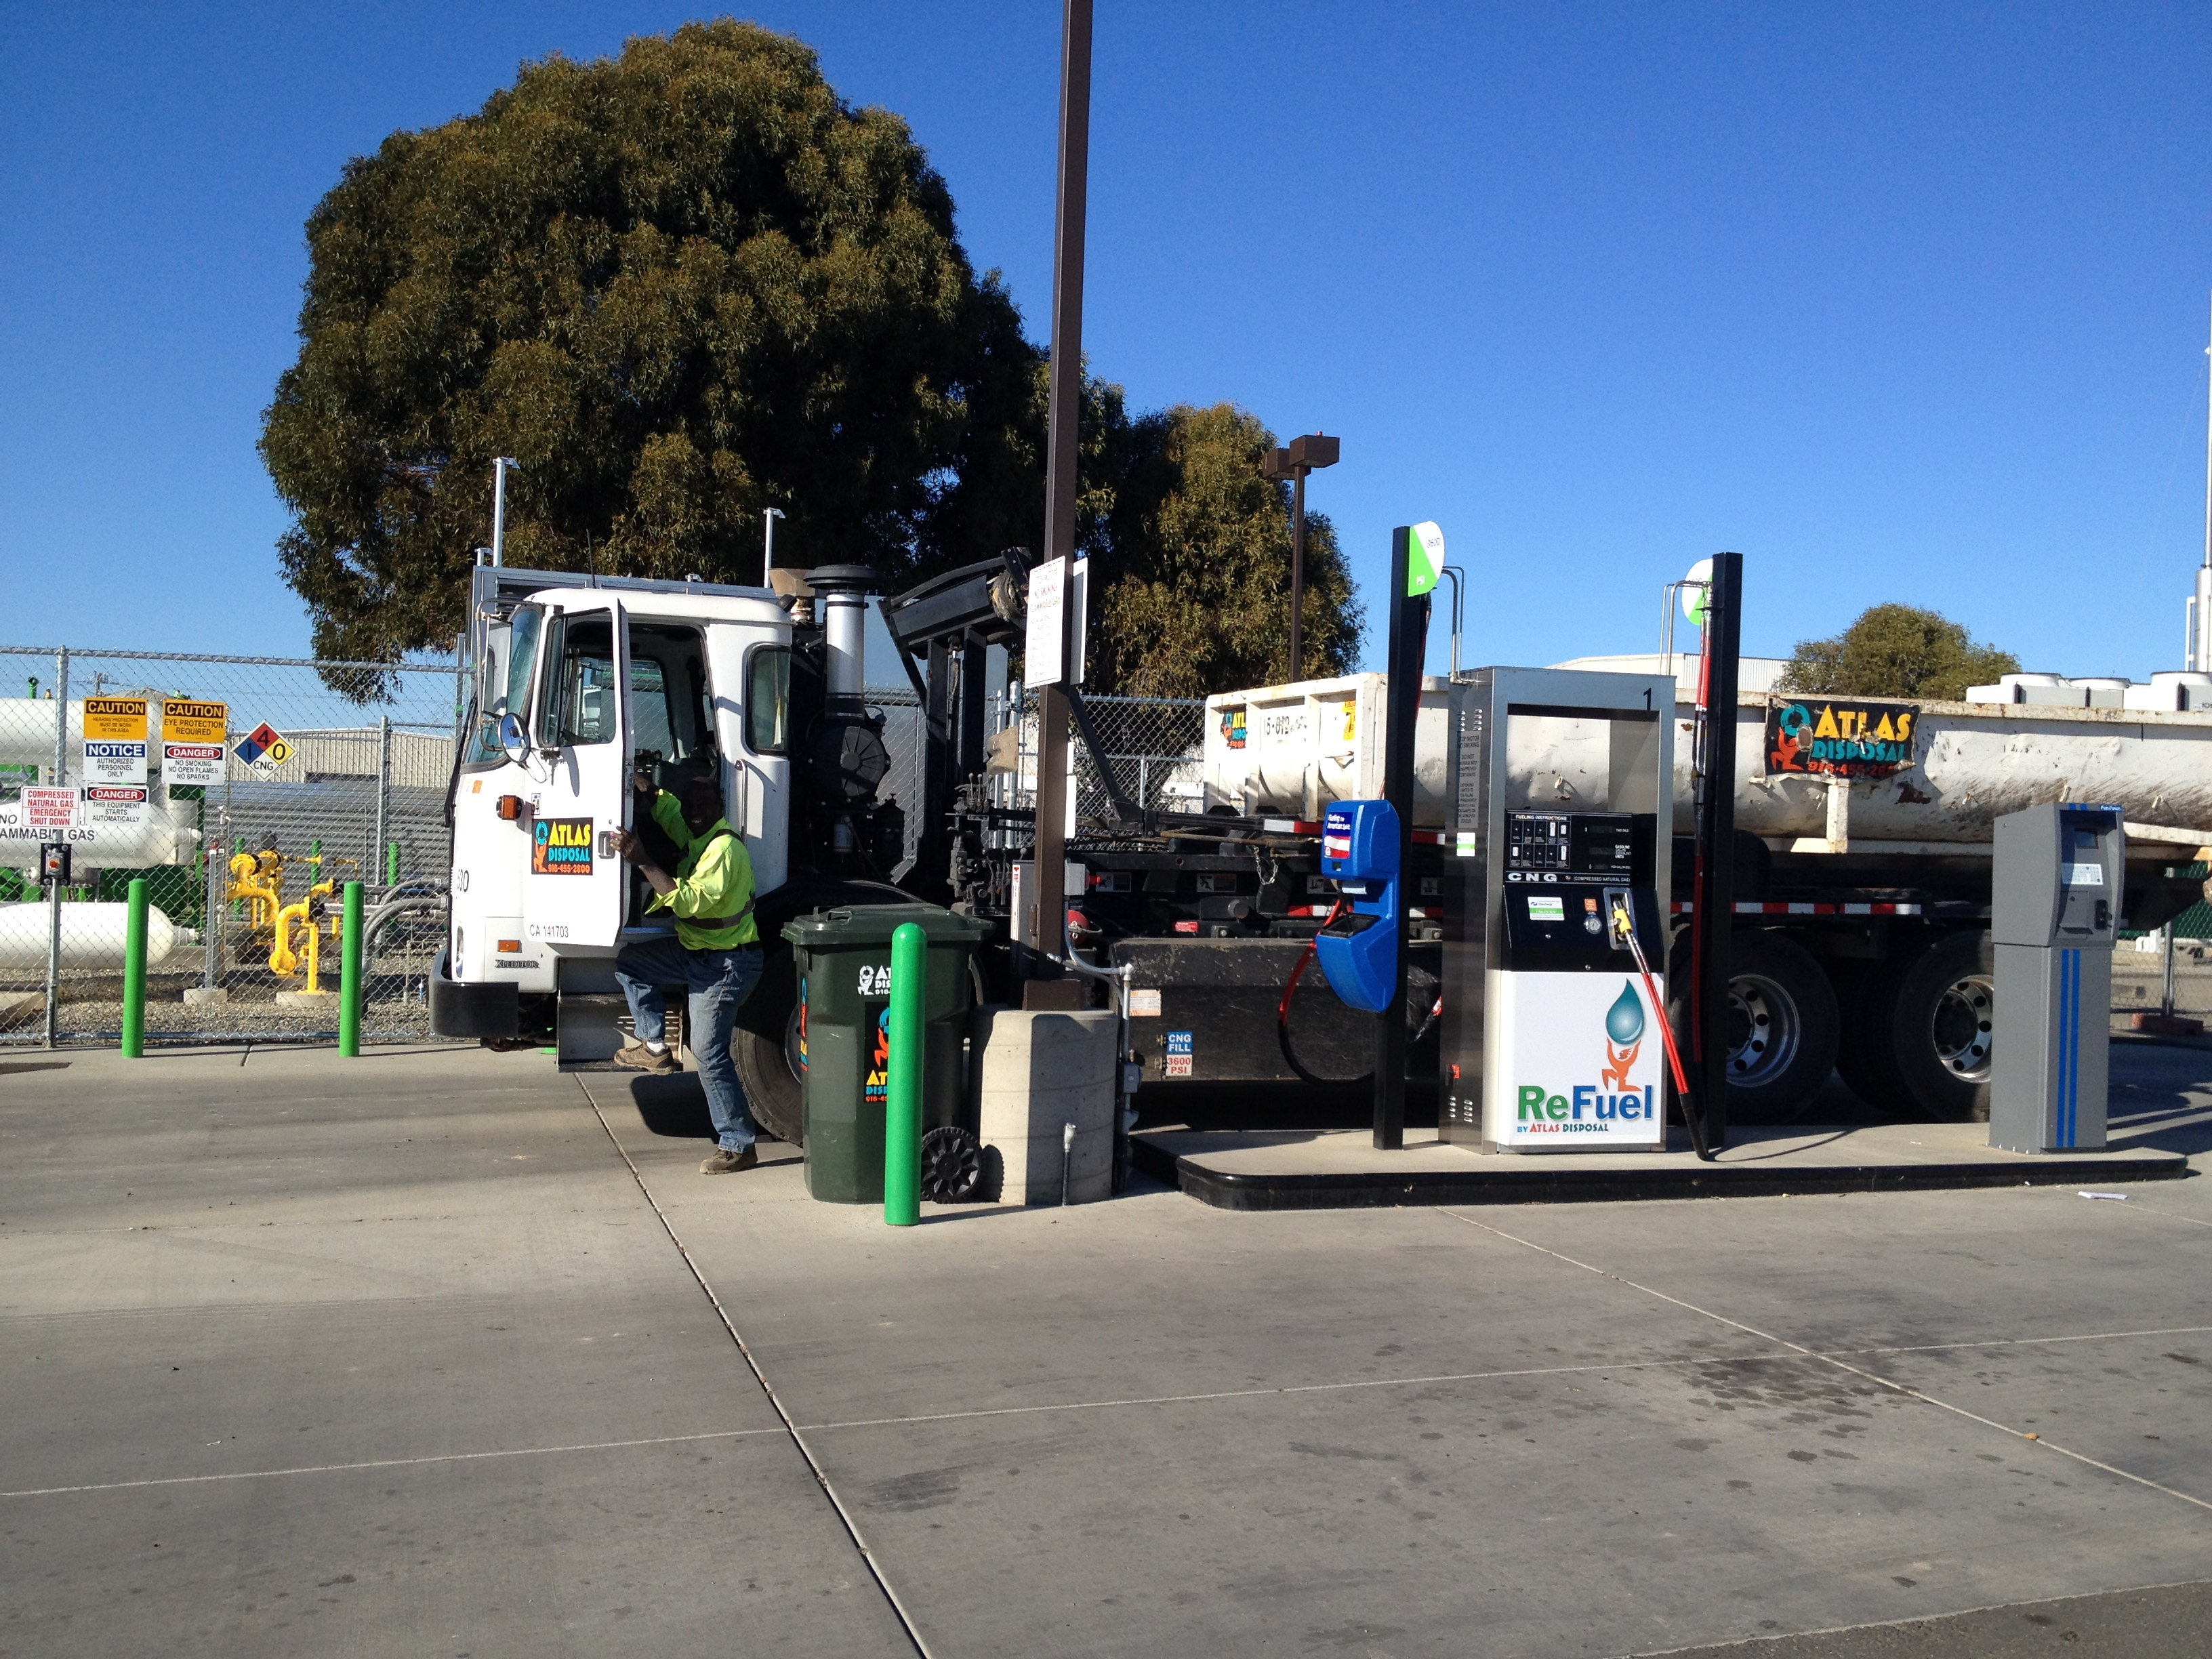 8 Big Organizations With Natural Gas Vehicles In Their Fleets